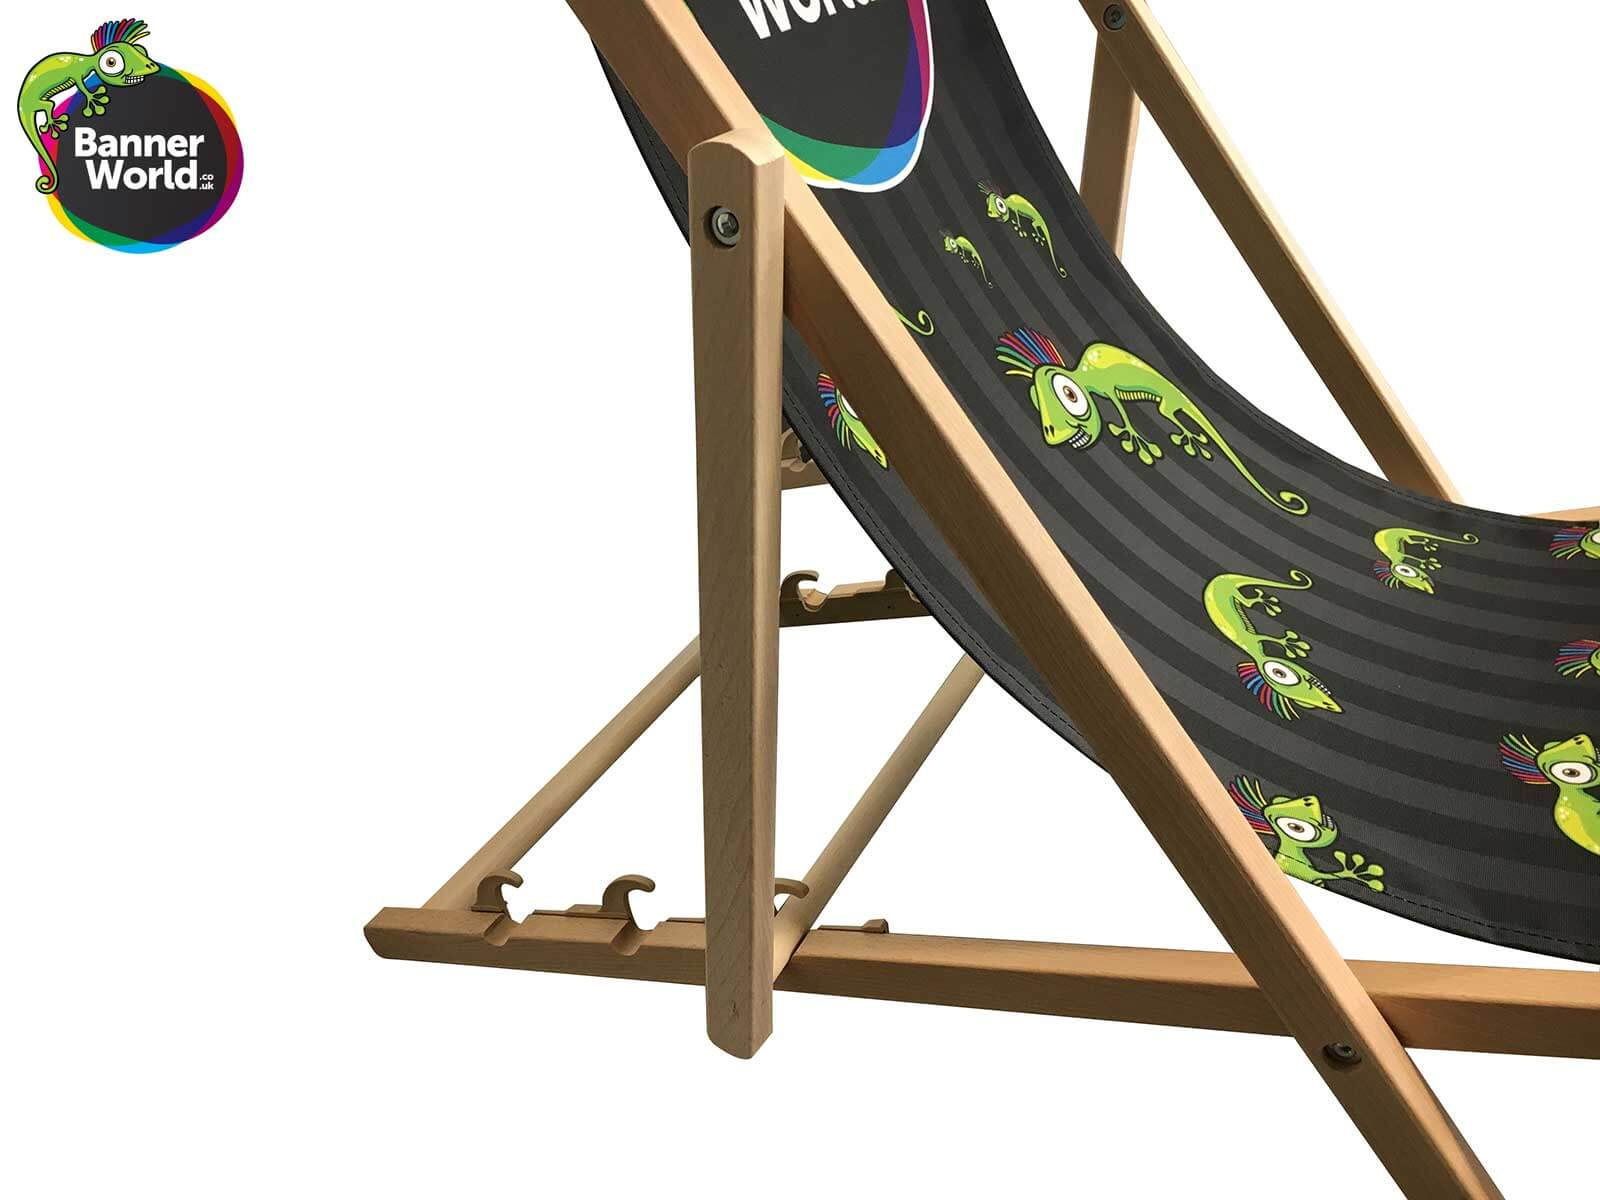 deck chair images scandinavian design kneeling branded chairs full colour printed personalised